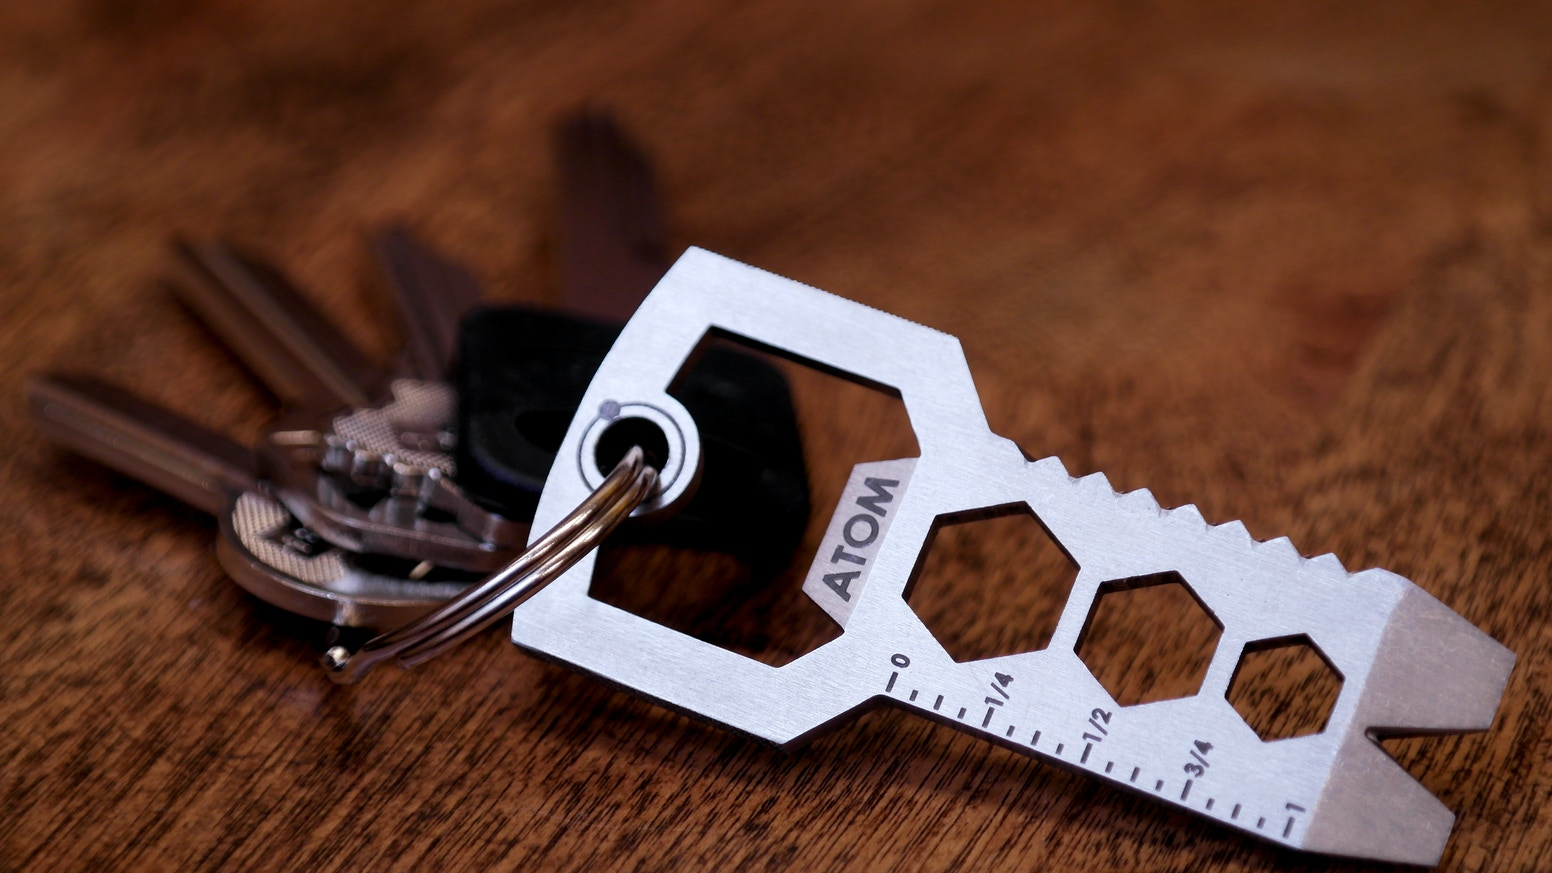 The key shaped multitool that puts a tool box in your pocket.